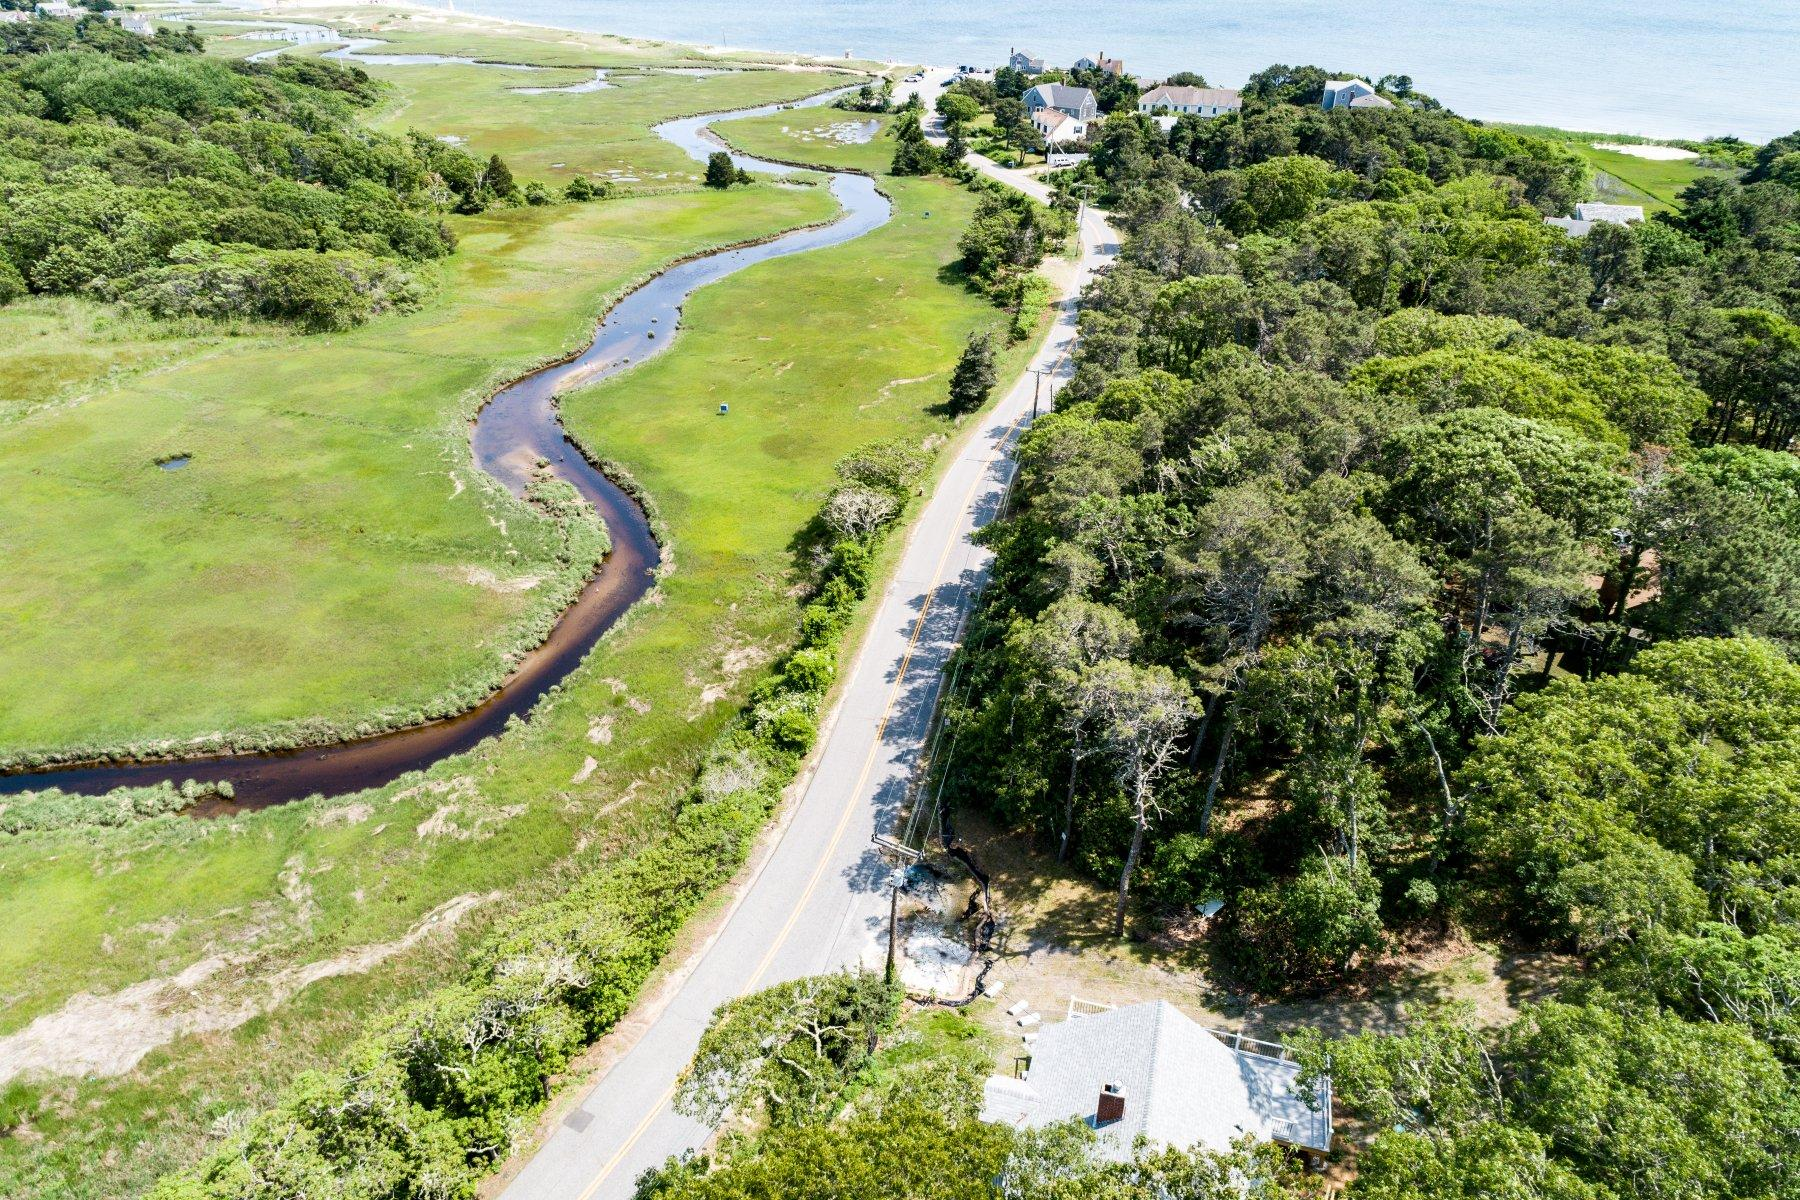 314 Cockle Cove Road, South Chatham MA, 02659